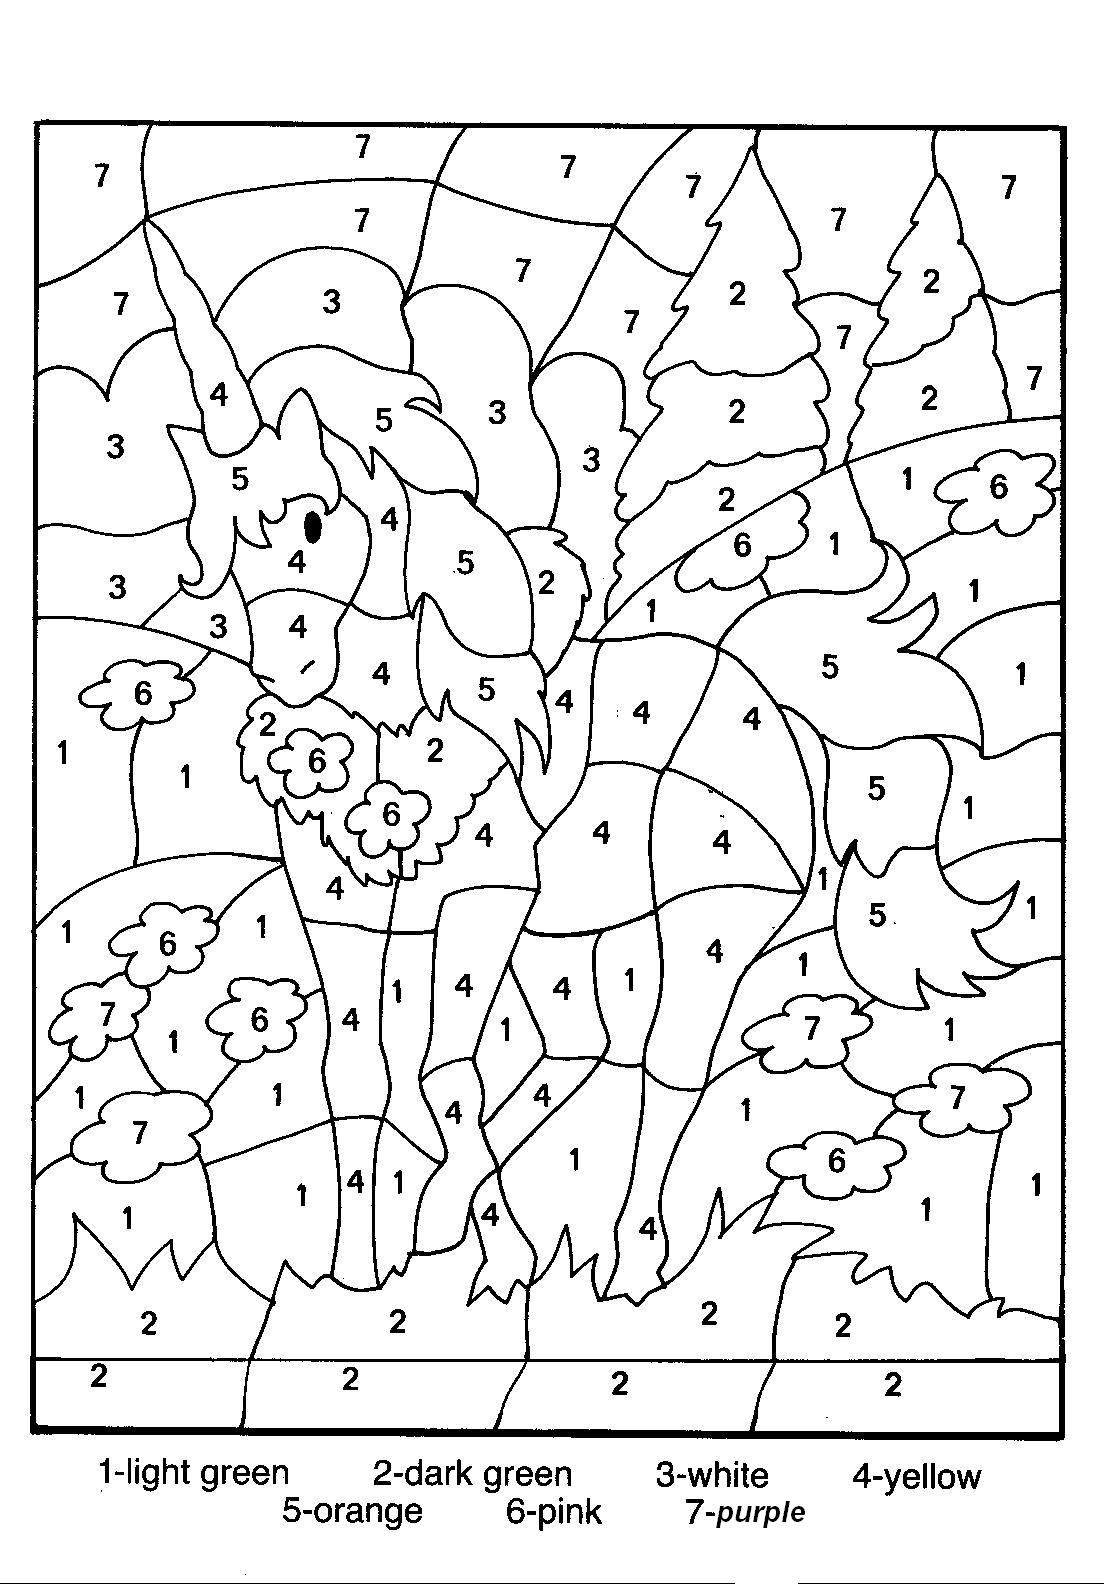 Free Printable Colornumber Coloring Pages - Best Coloring Pages - Free Printable Paint By Number Coloring Pages